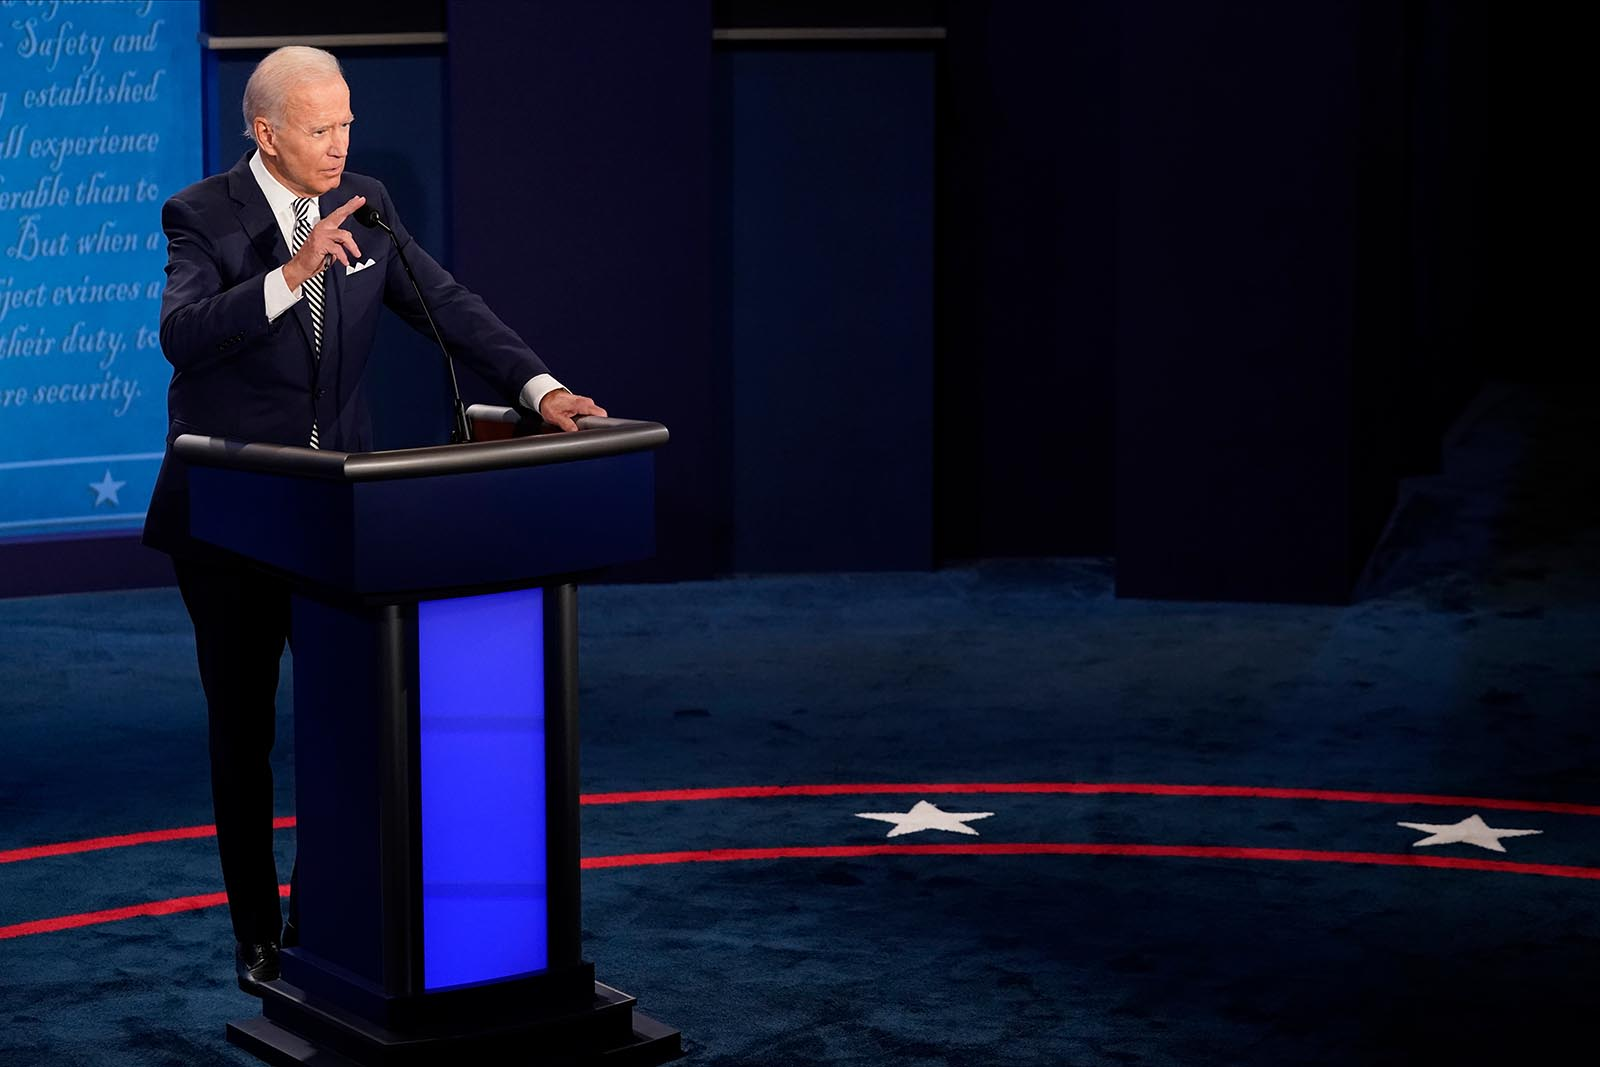 Democratic presidential nominee Joe Biden participates in the first presidential debate against U.S. President Donald Trump.